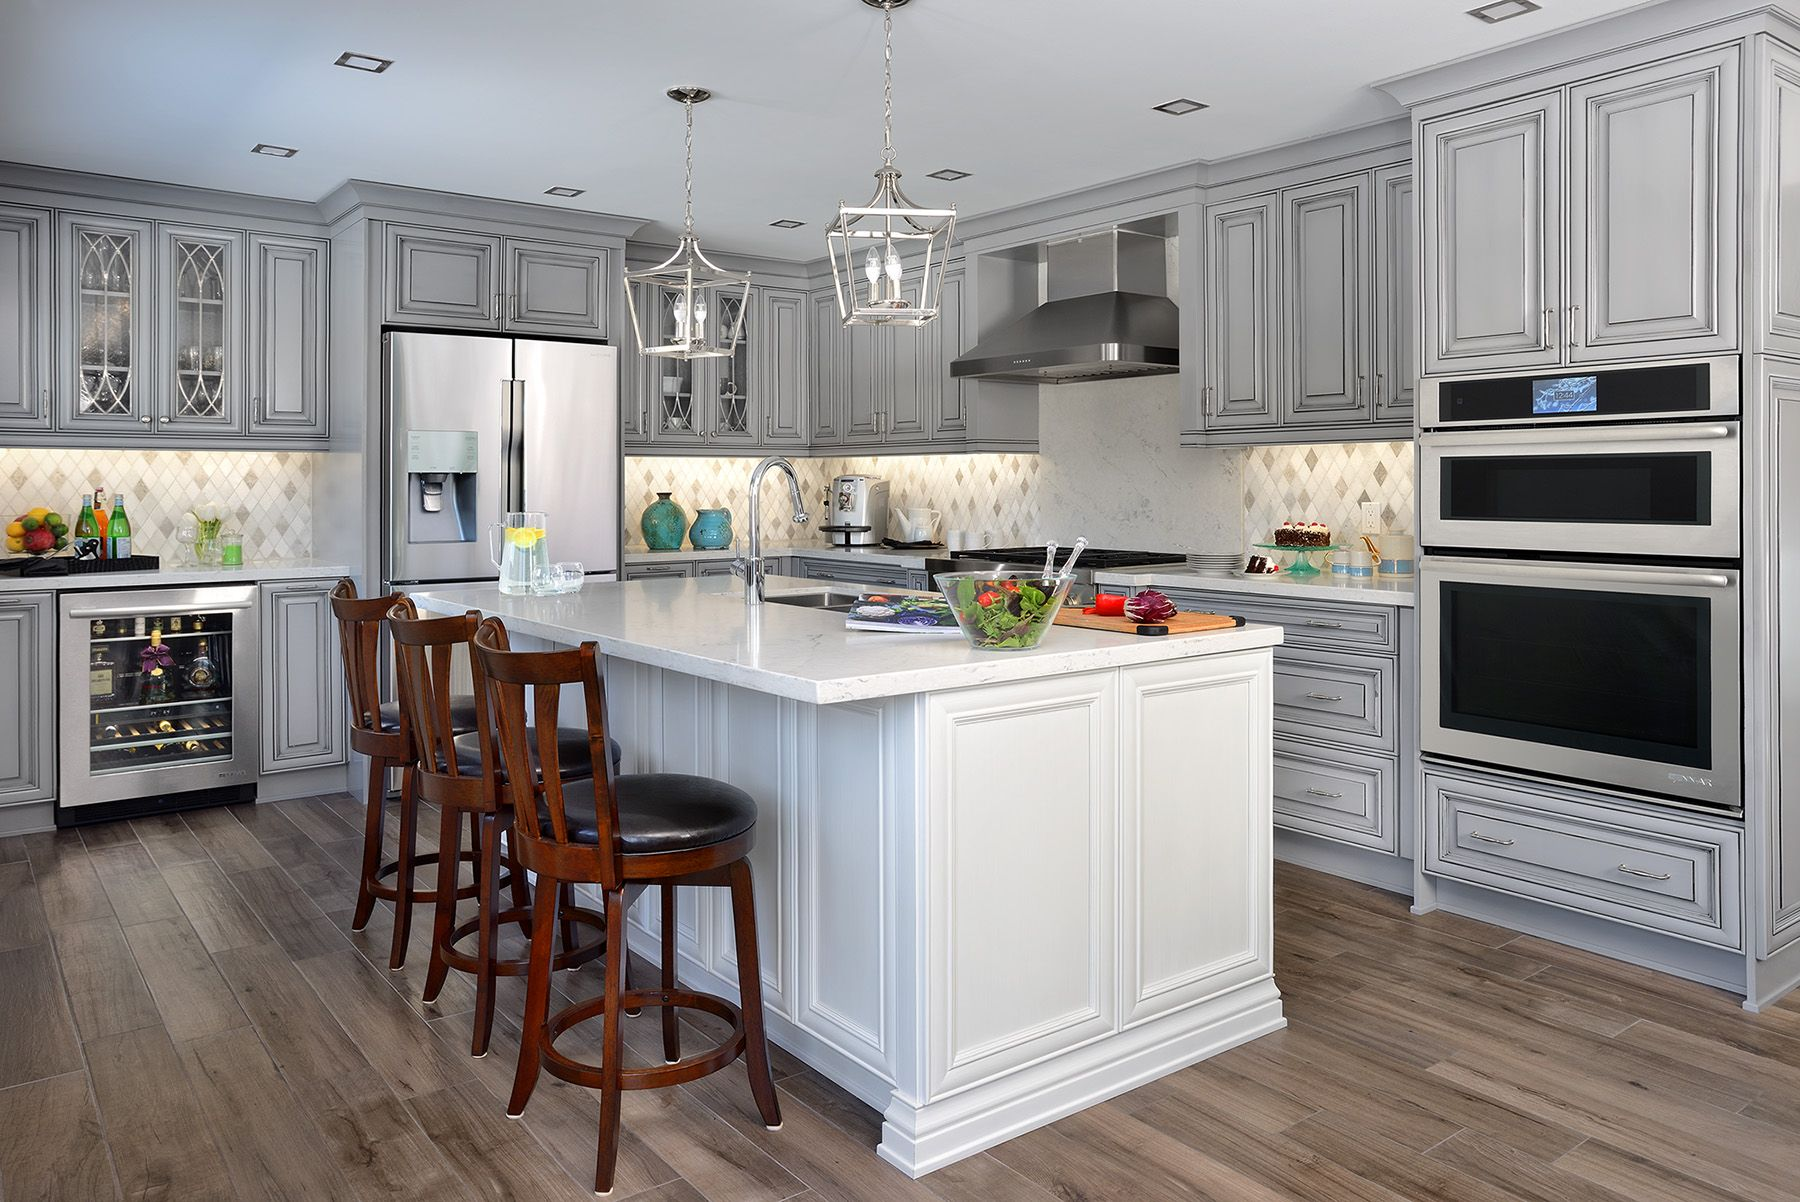 glacier white island and sterling grey cabinets blend nicely together raywalcabinets kitchen on kitchen ideas white and grey id=37080